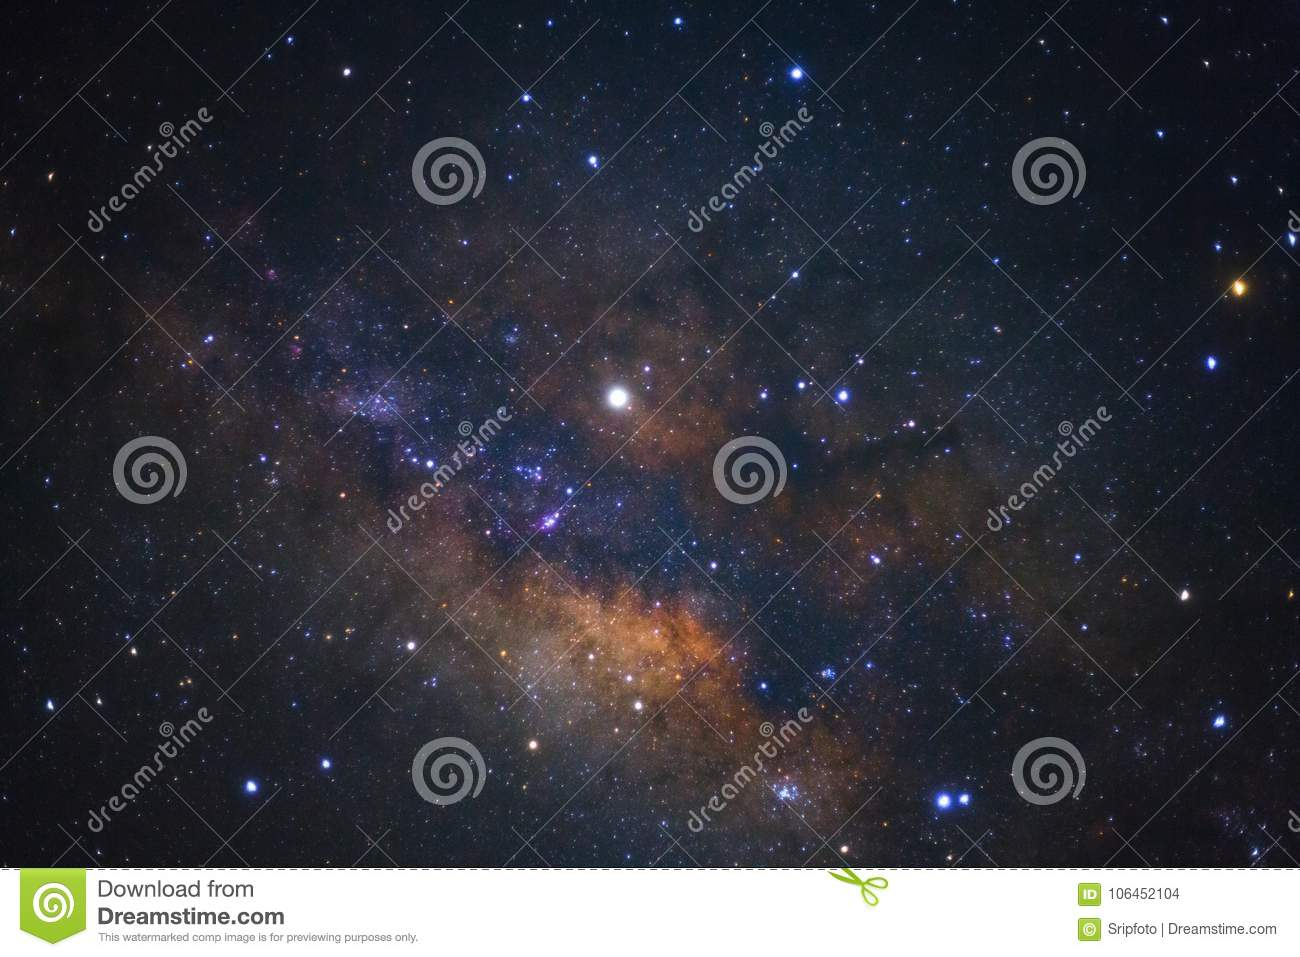 Galactic center of the milky way galaxy